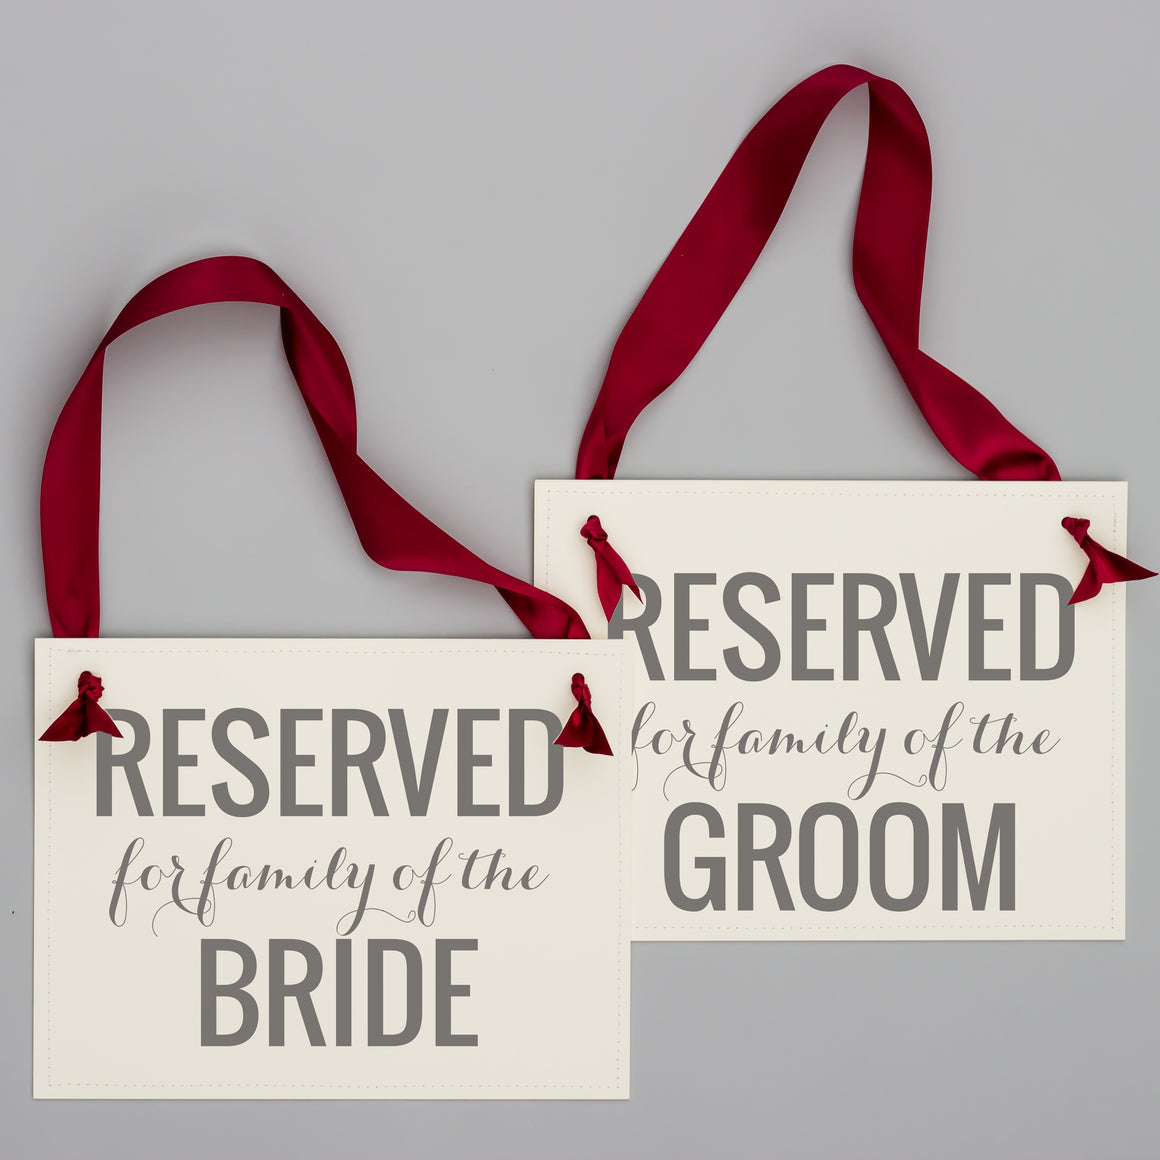 Reserved for bride and groom family